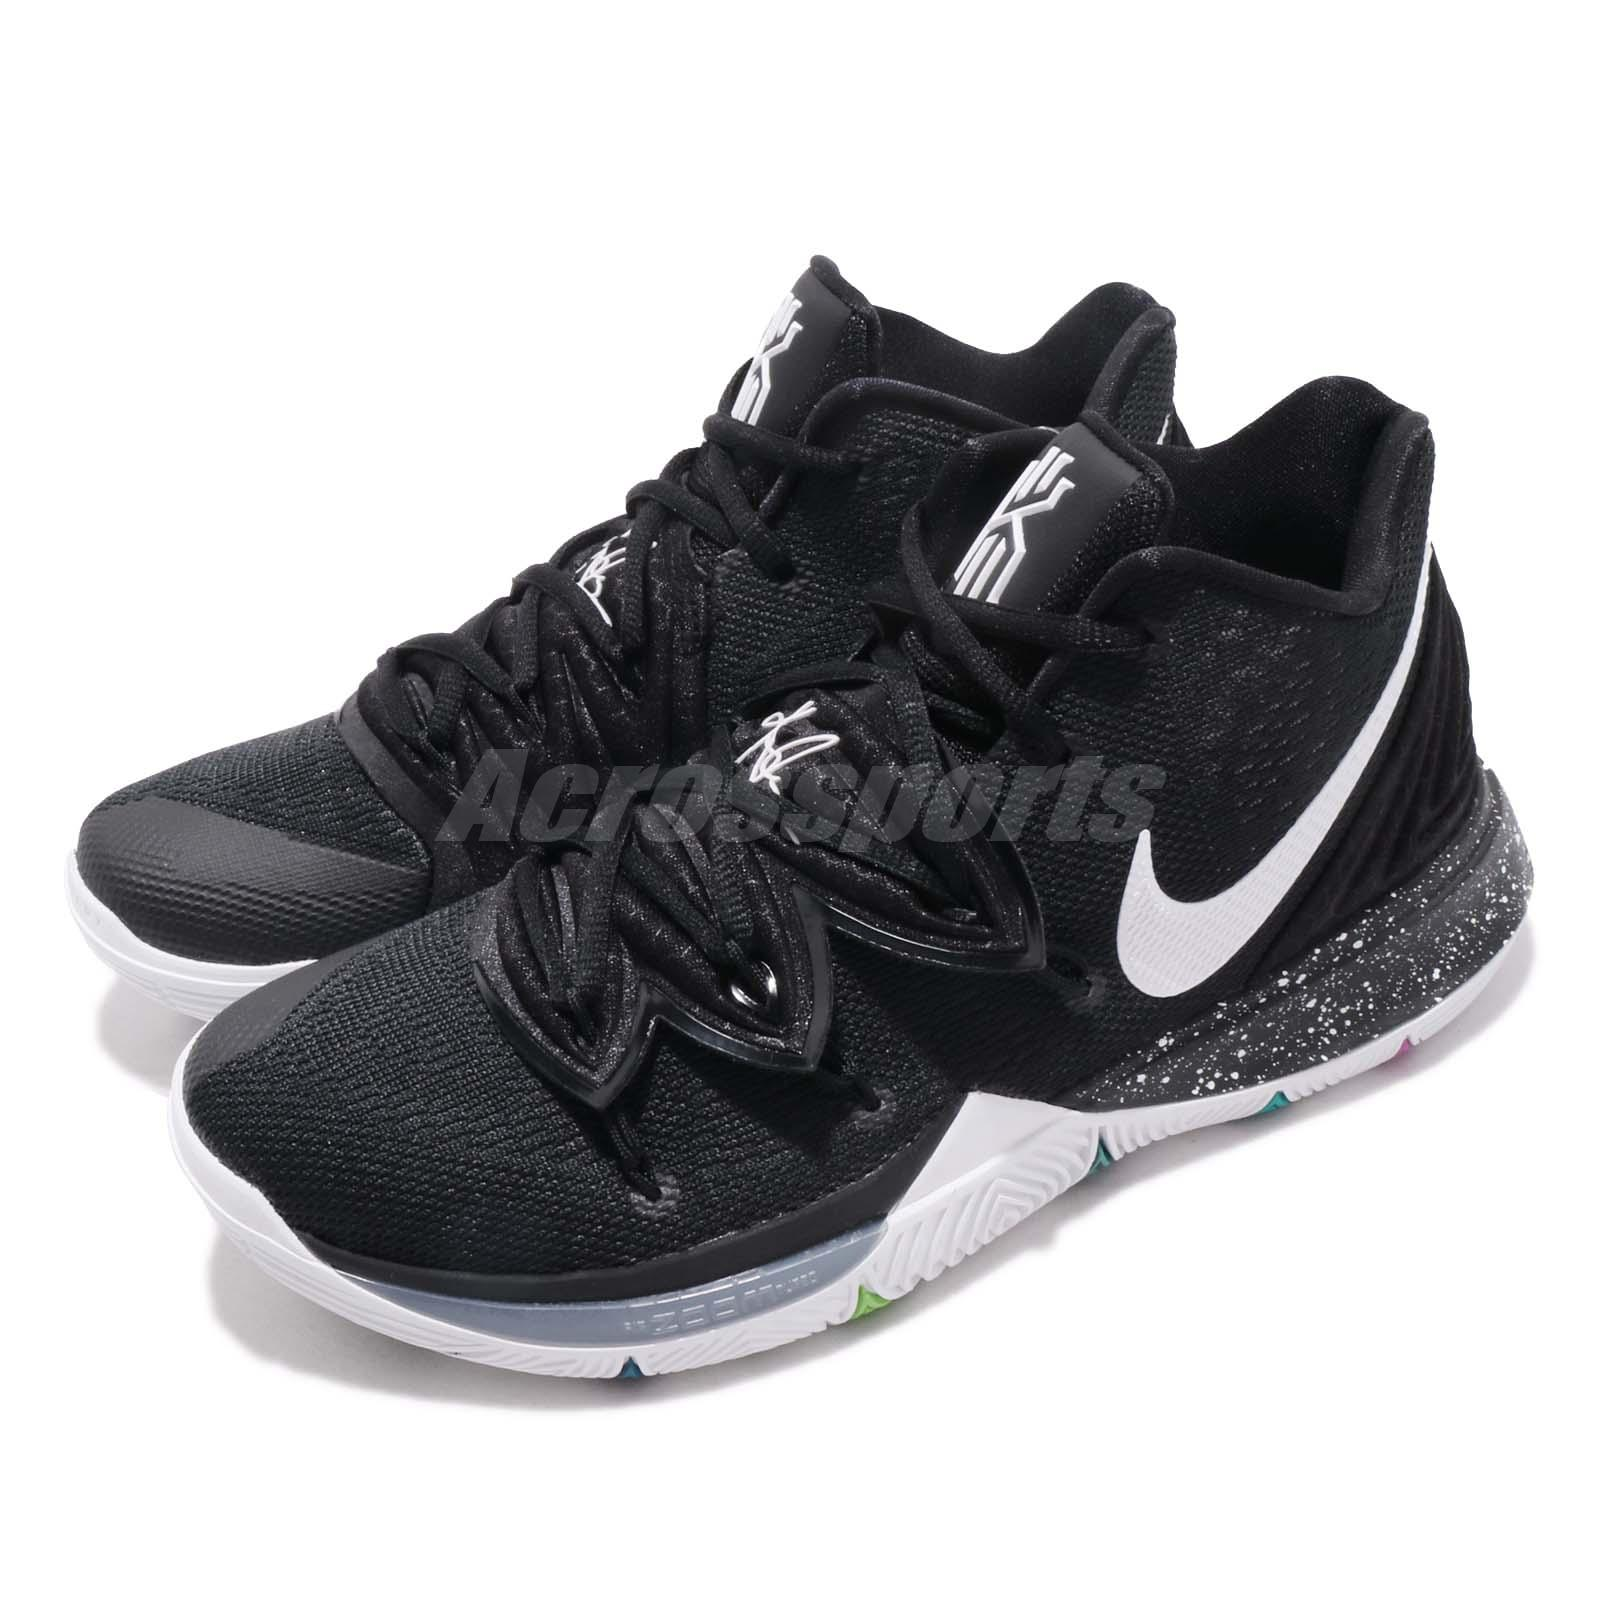 finest selection 412ac bd697 Details about Nike Kyrie 5 EP V Irving Black Magic Men Basketball Shoes  Sneakers AO2919-901